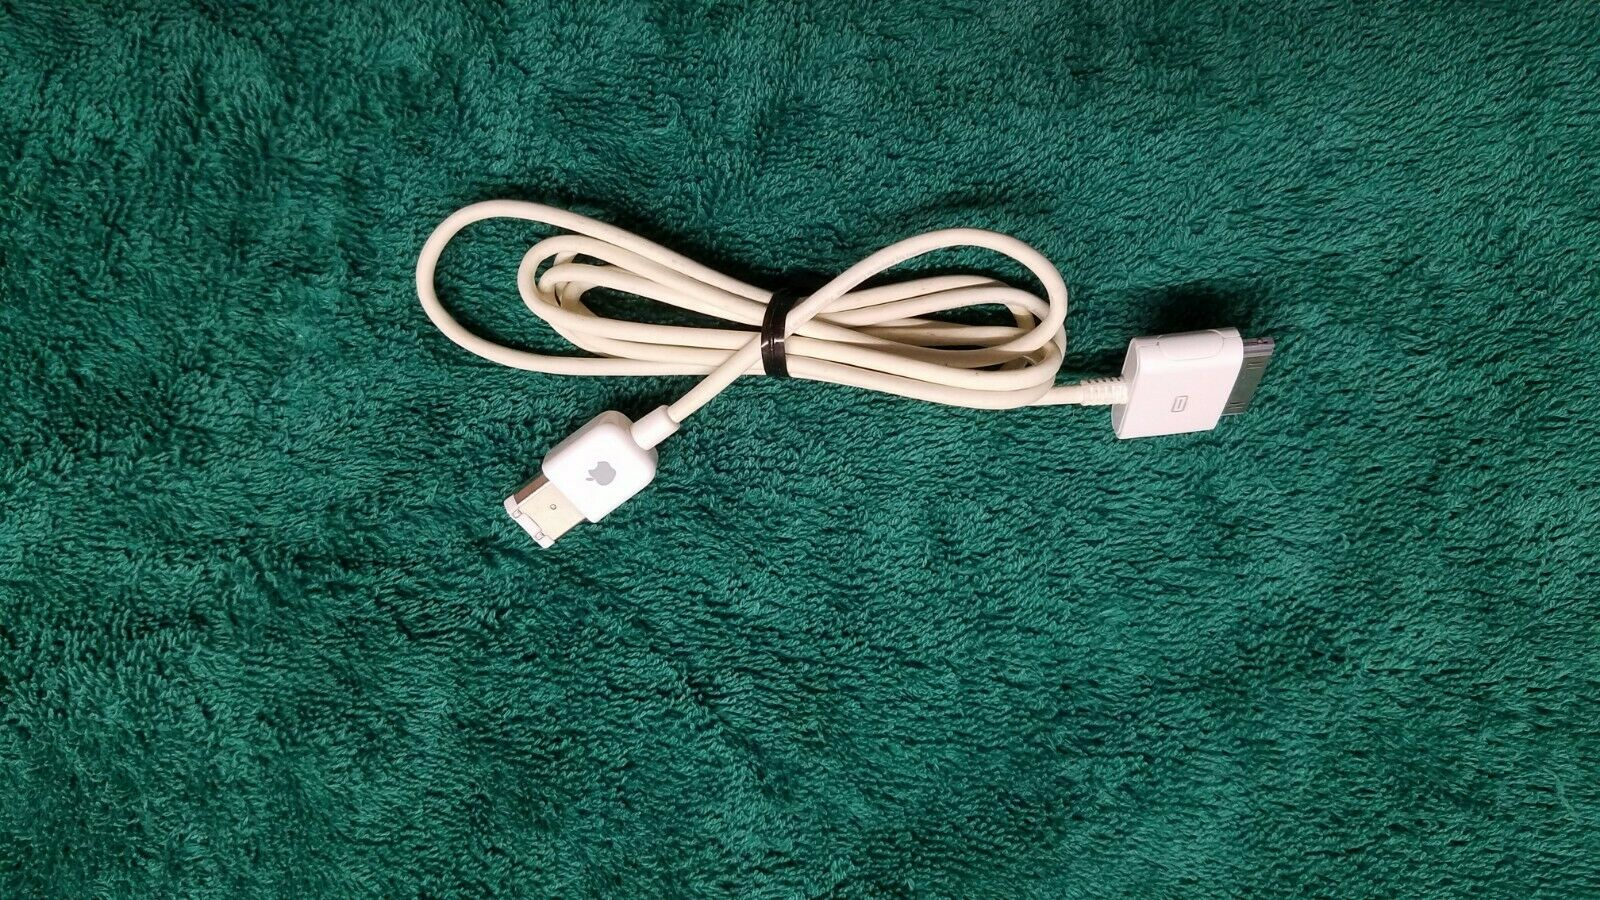 M9127LL/A APPLE ORIGINAL FIREWIRE 400 30-pin Ipod Classic Dock Connector Cable - $13.00